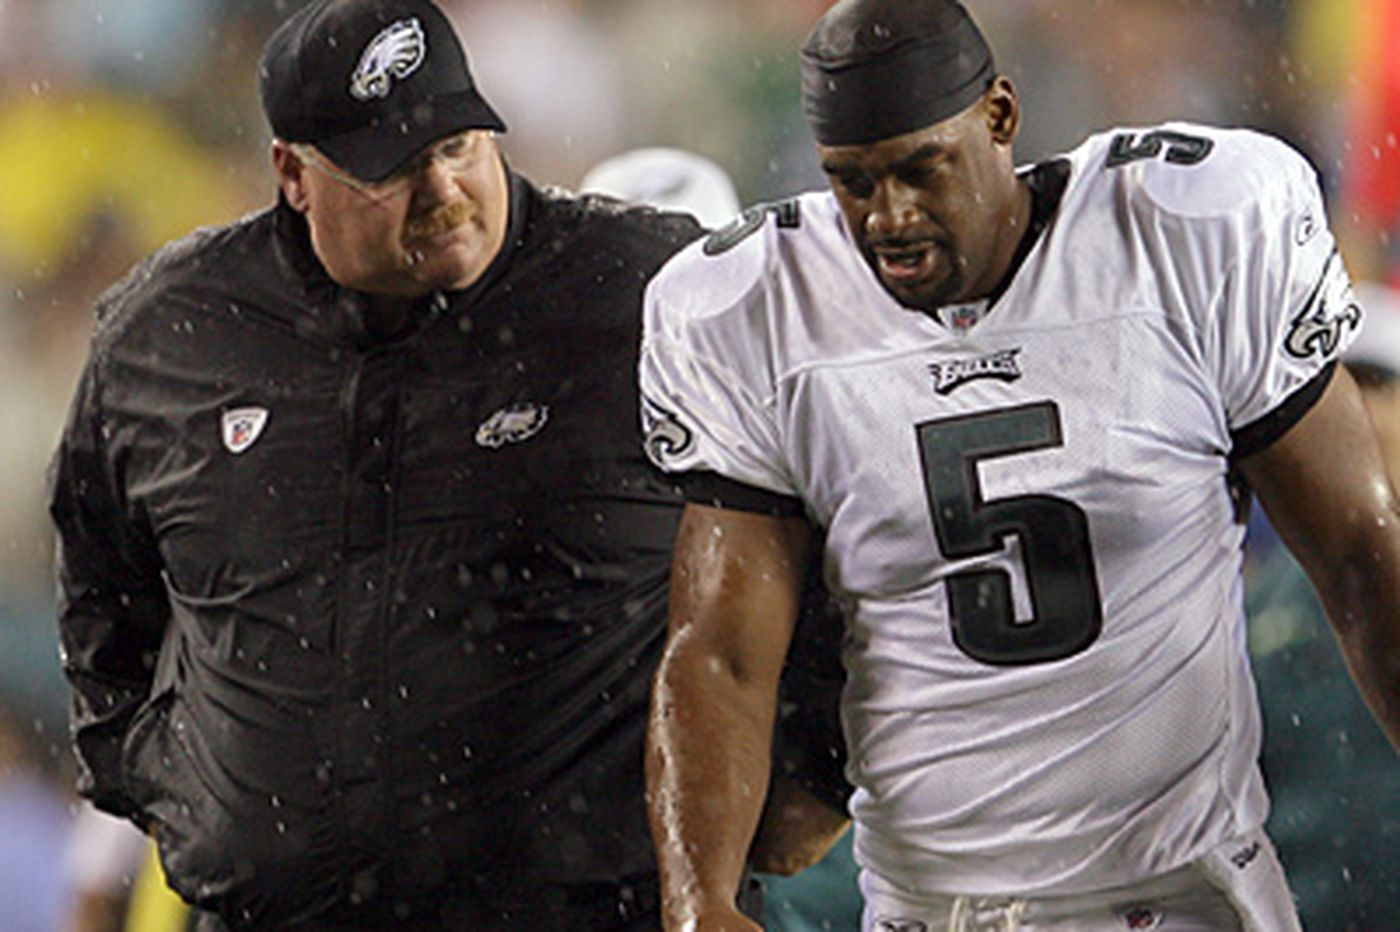 McNabb draws interest mostly from the Raiders